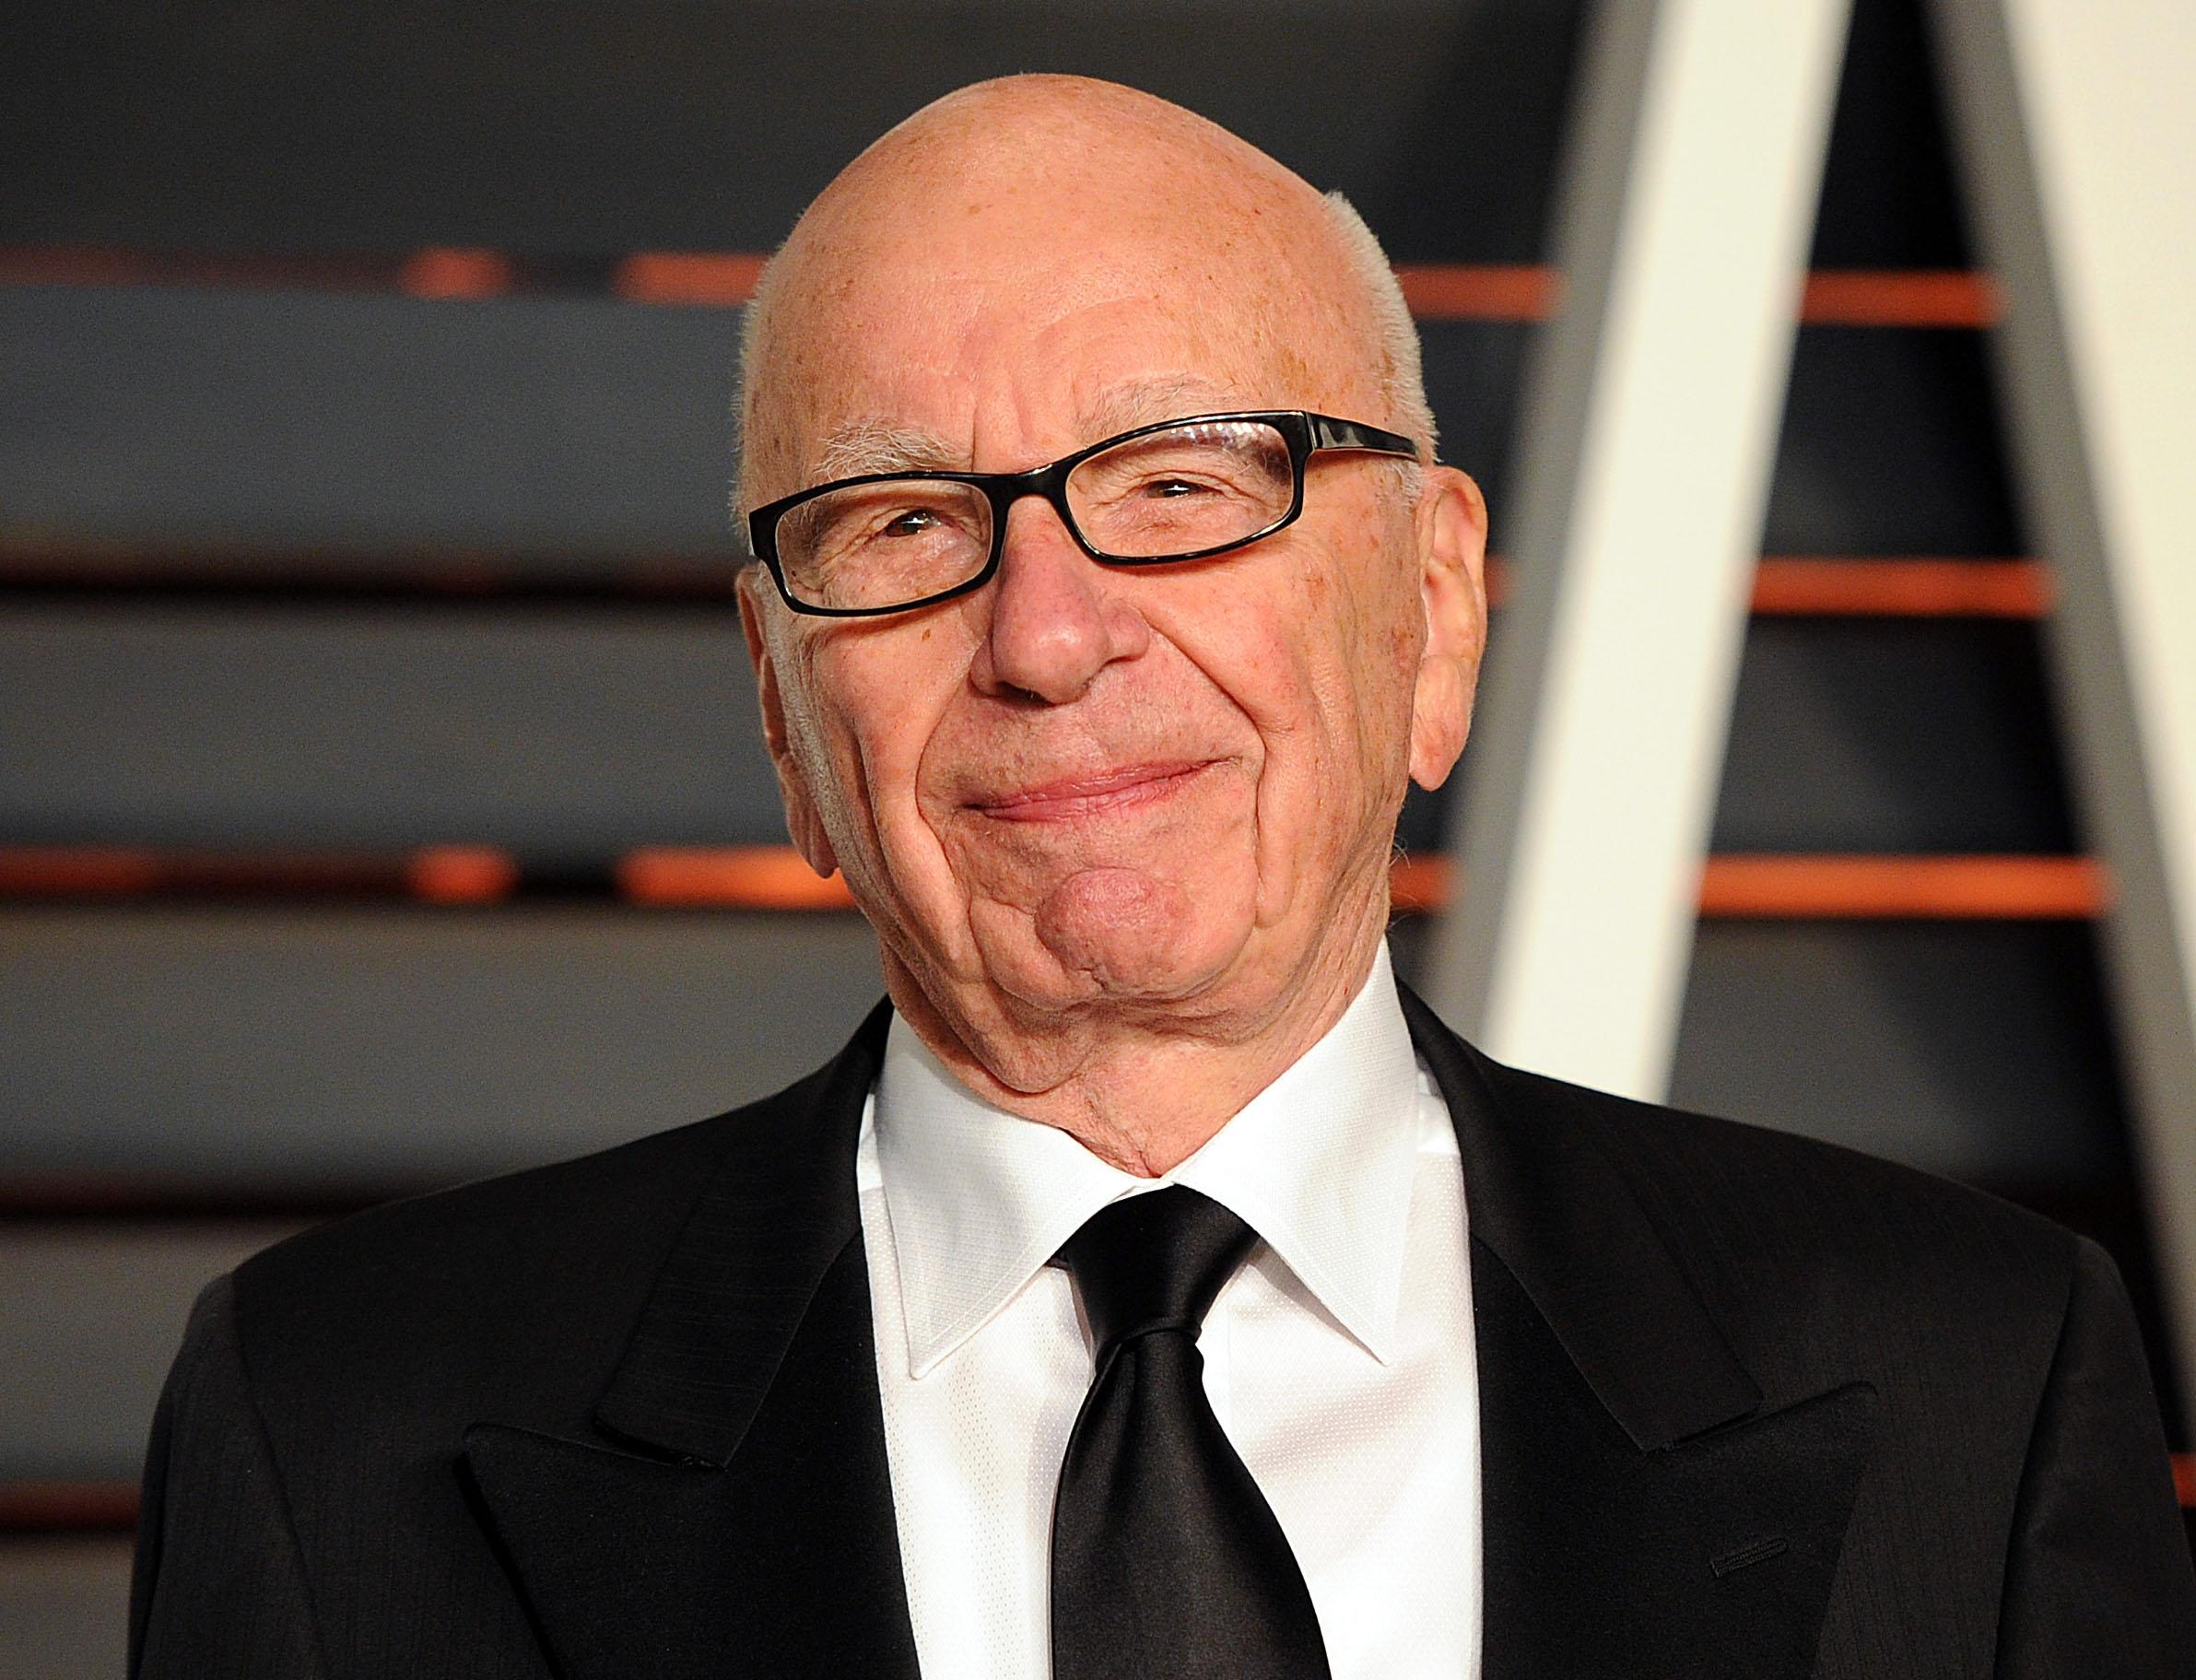 Rupert Murdoch apologizes for 'real black President' tweet